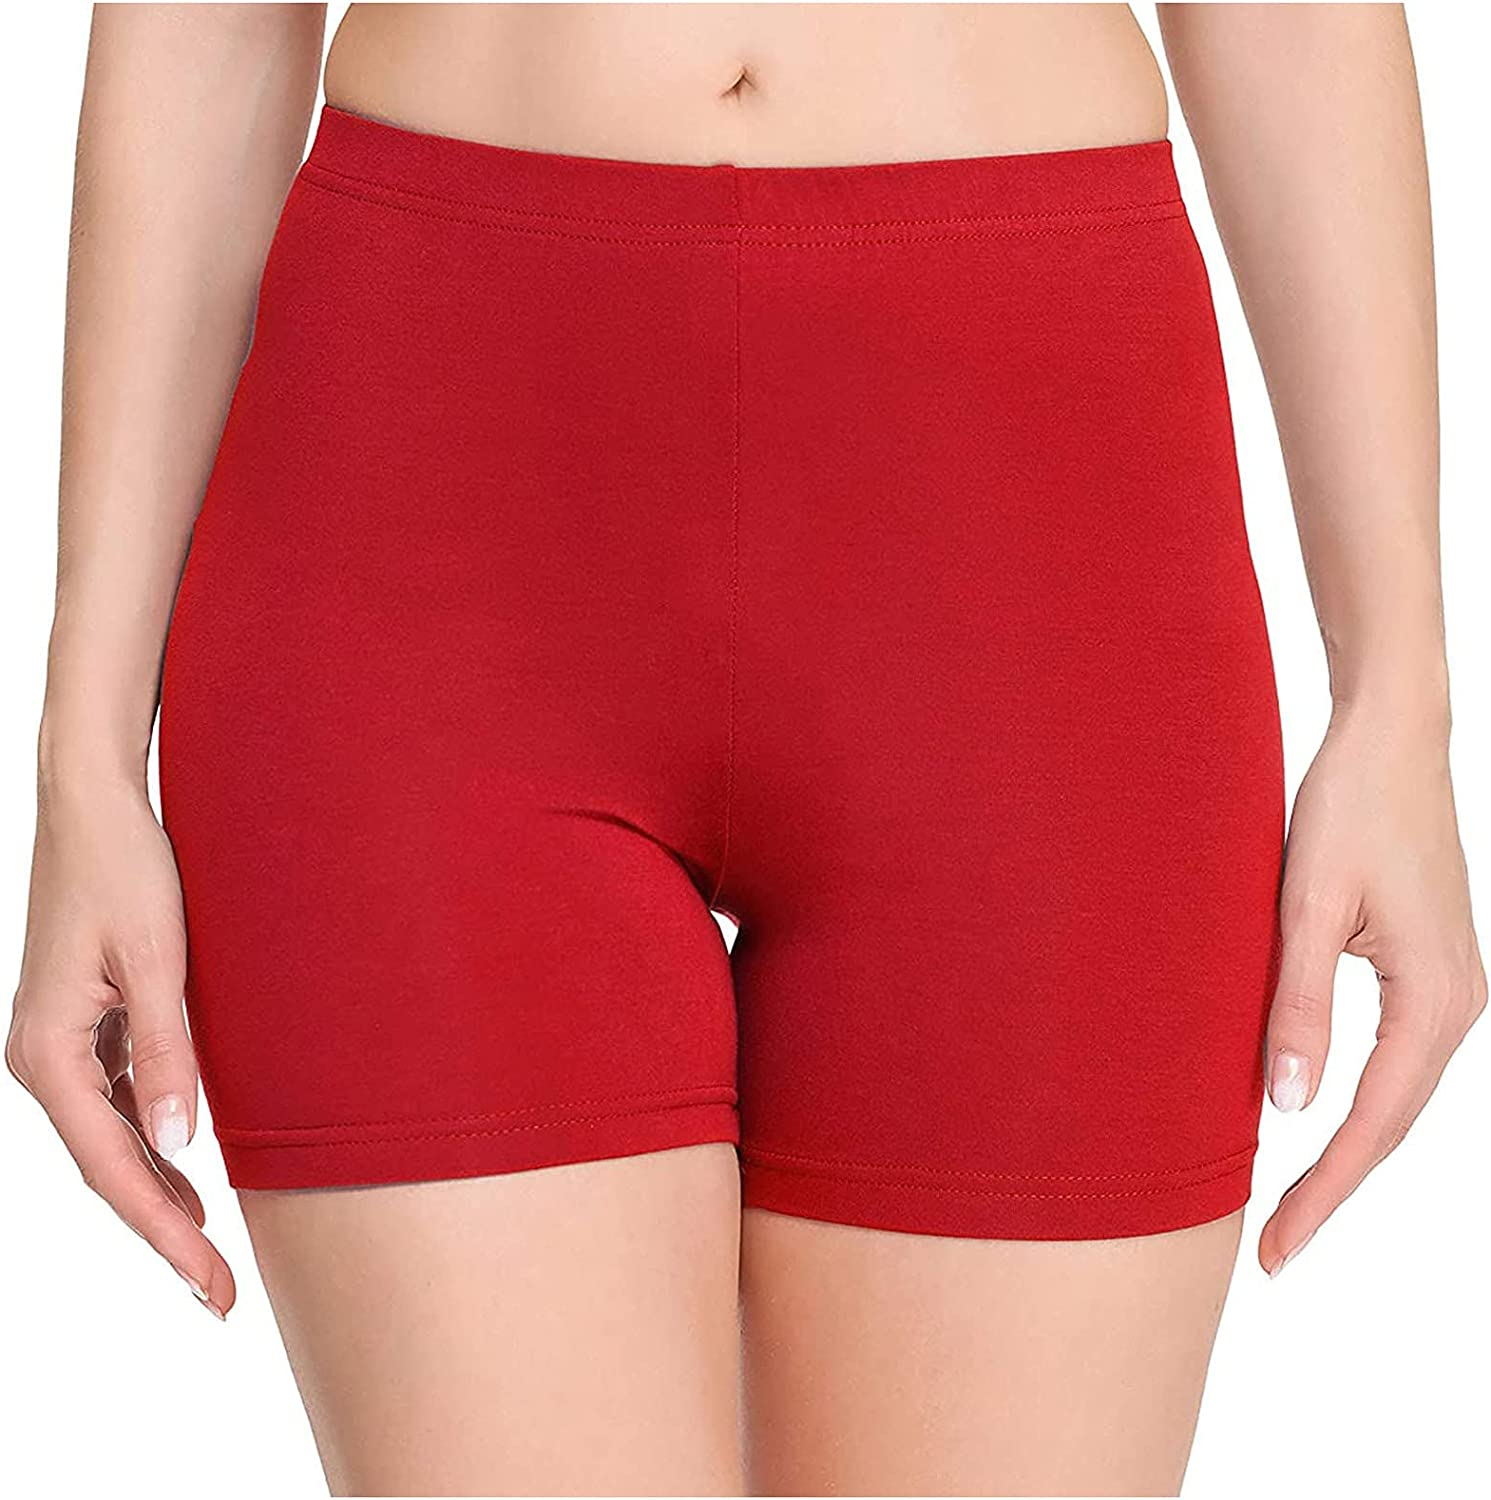 FlekmanArt Leggings Shorts for Women Control Waist High We OFFer at cheap prices Special Campaign Tummy Yo